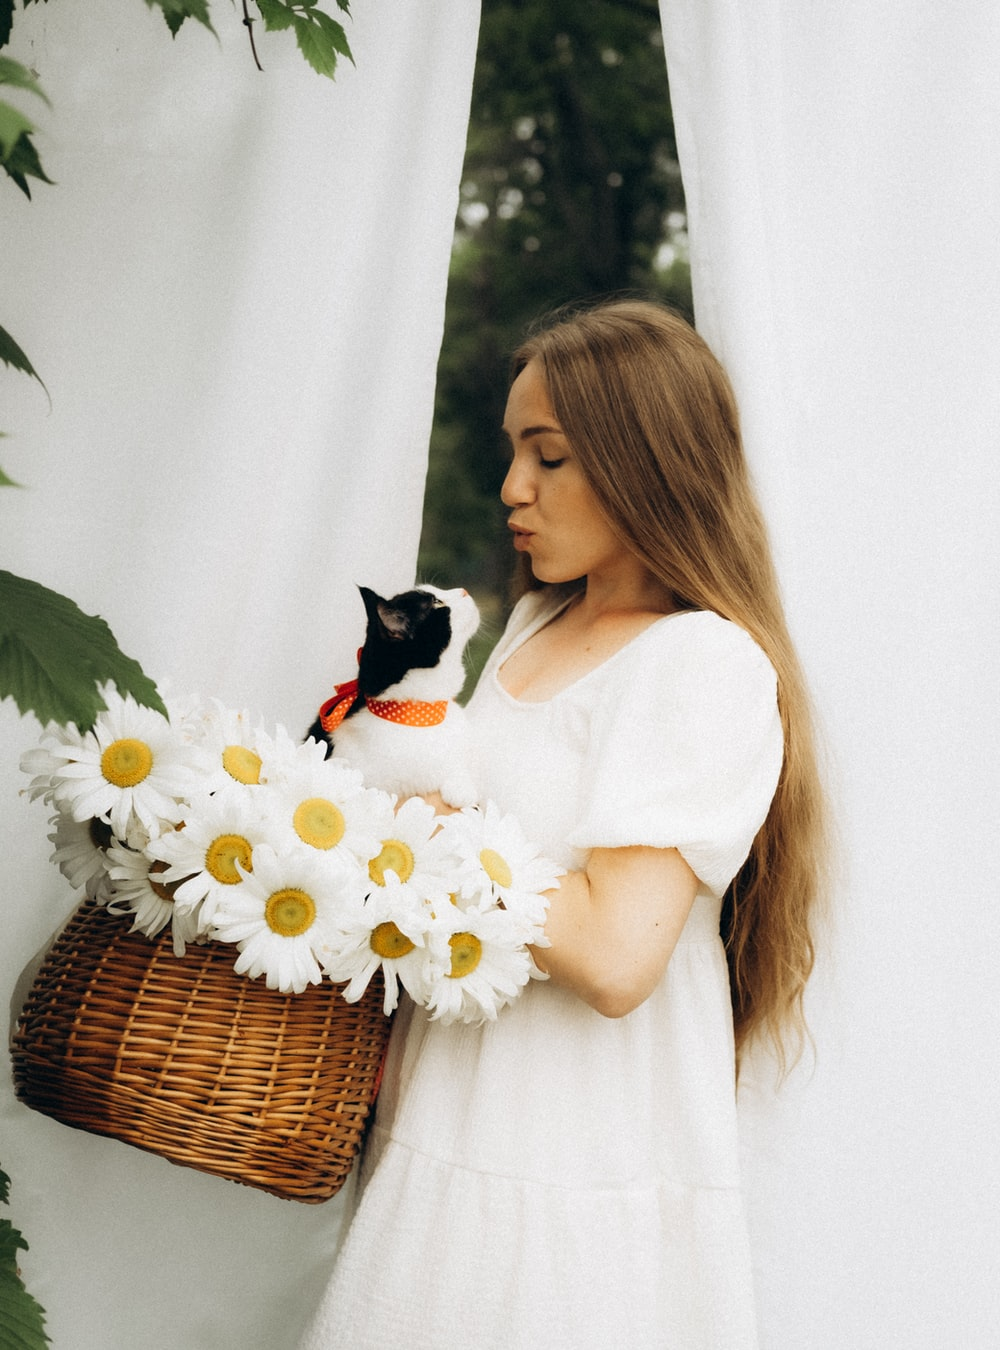 woman in white dress holding white daisy flowers